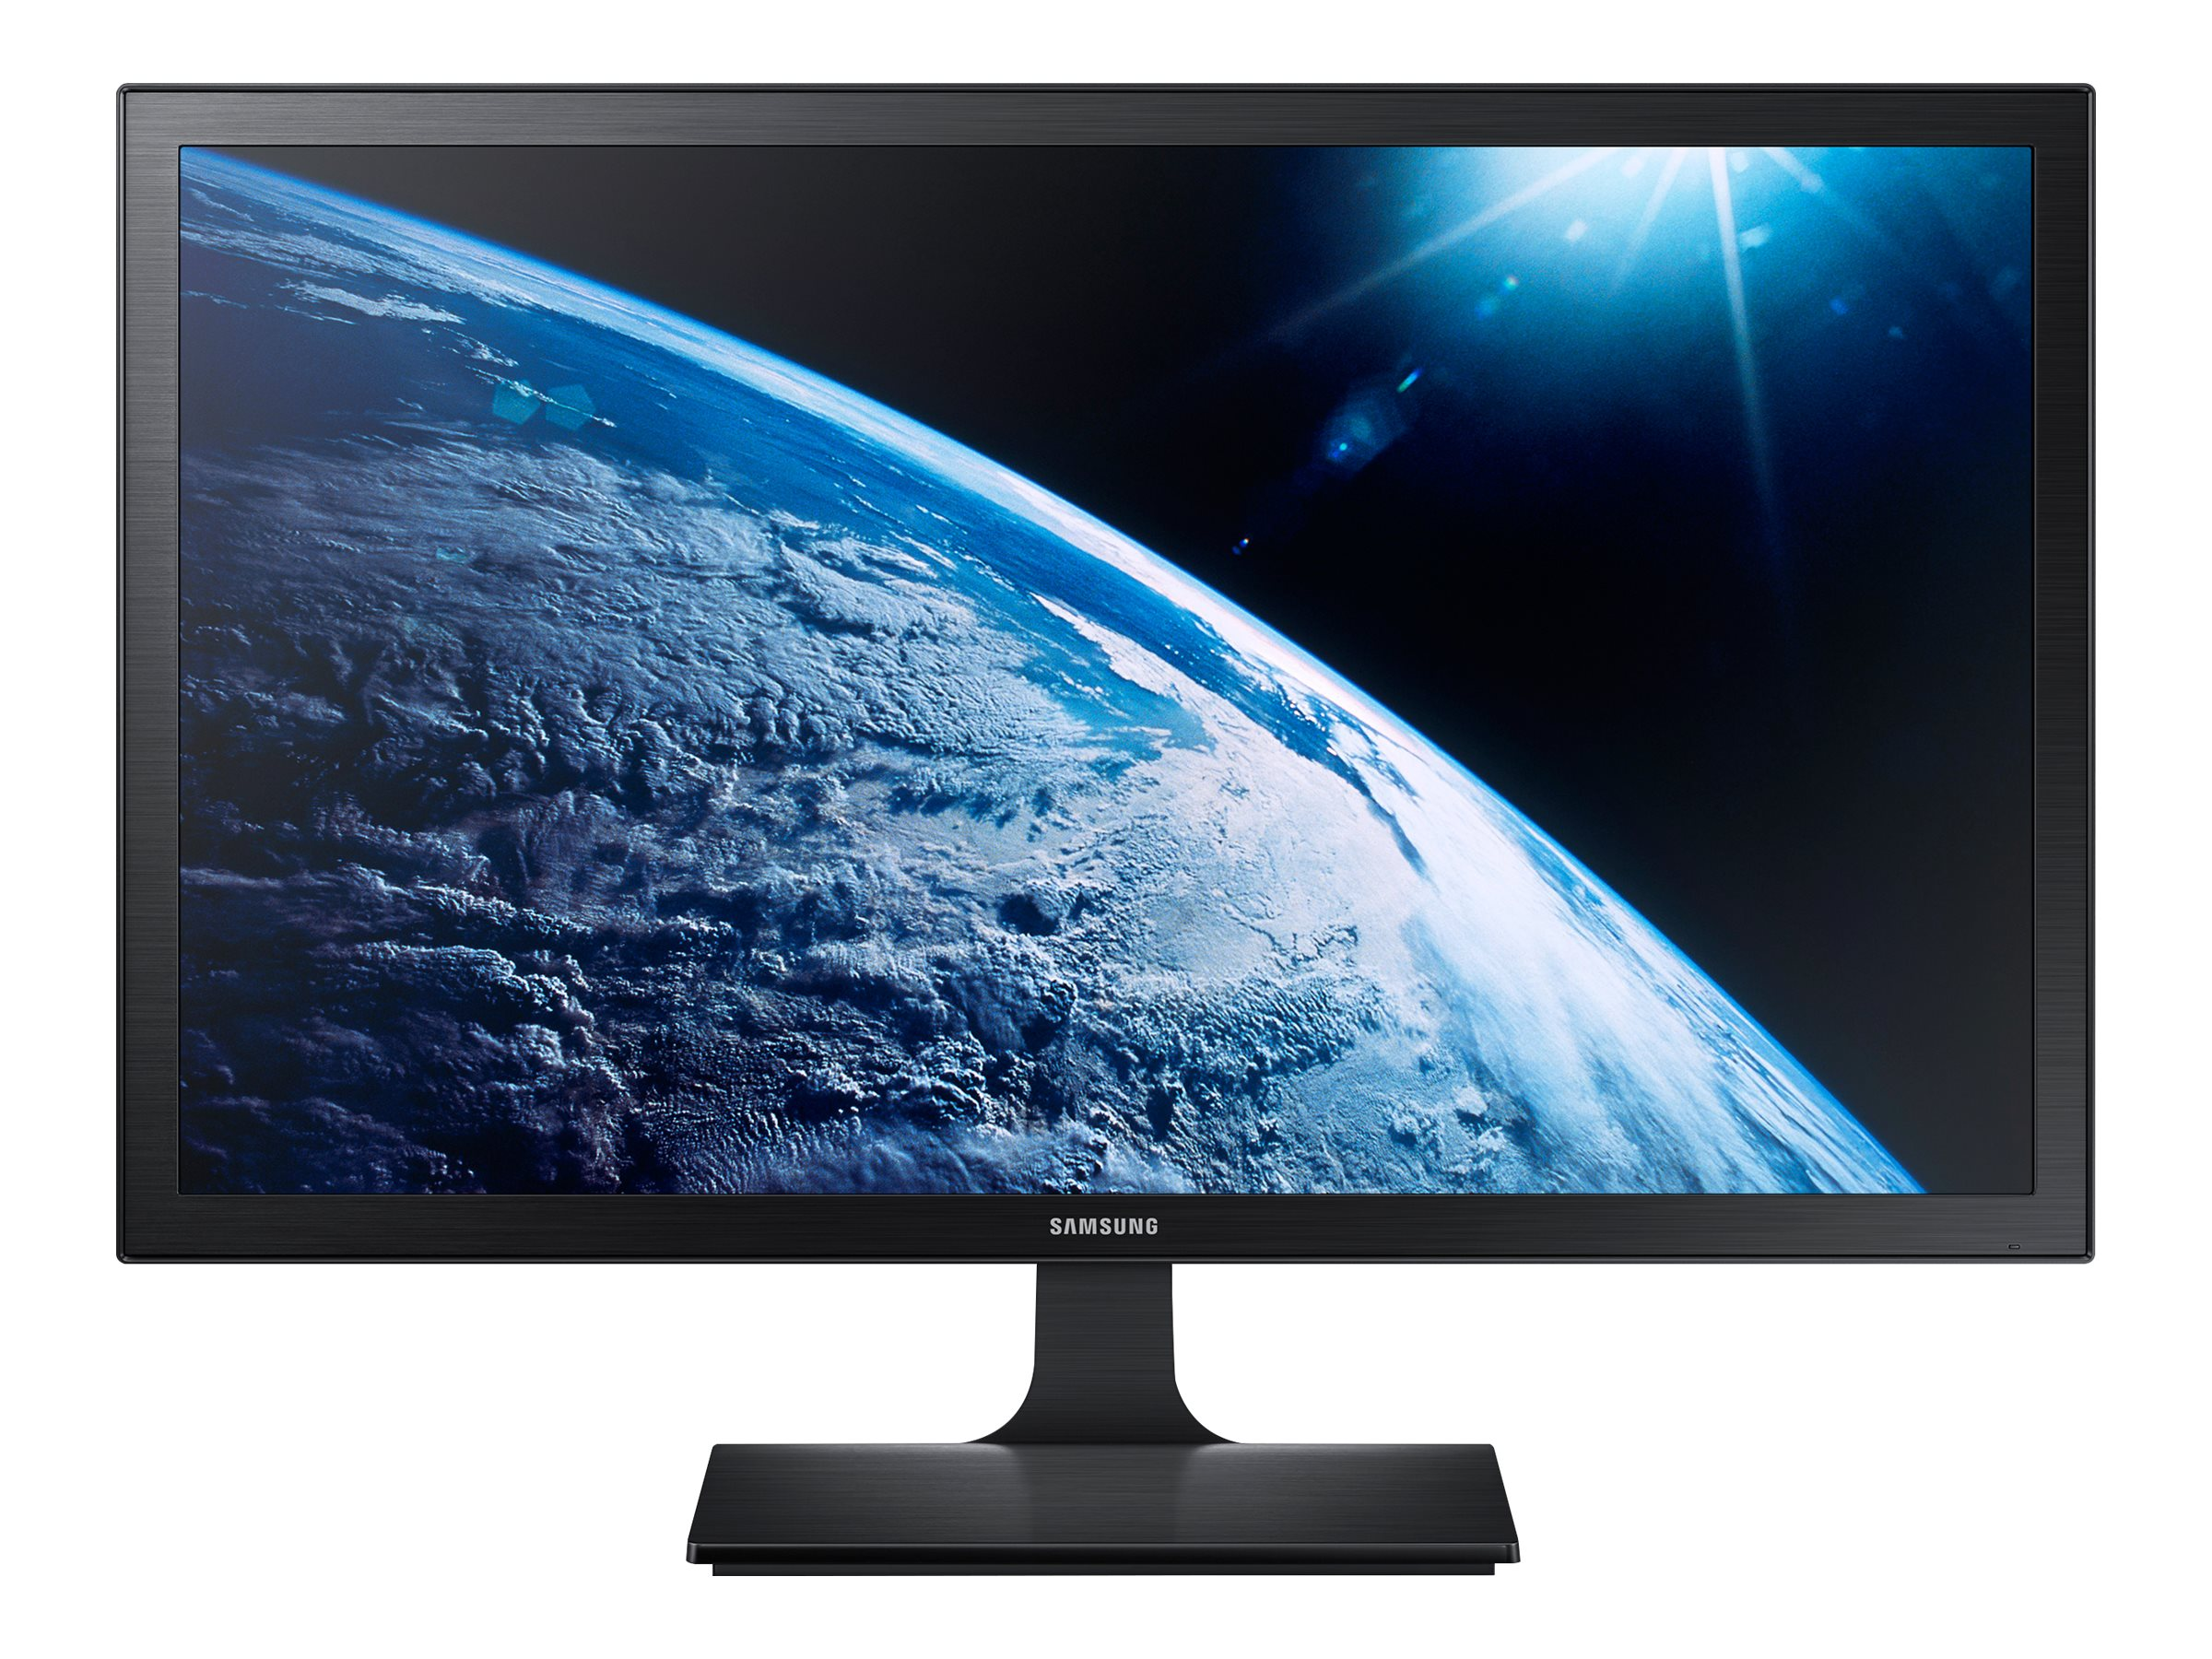 Samsung 21.5 SE310 Full HD LED-LCD Monitor, Black, LS22E310HS/ZA